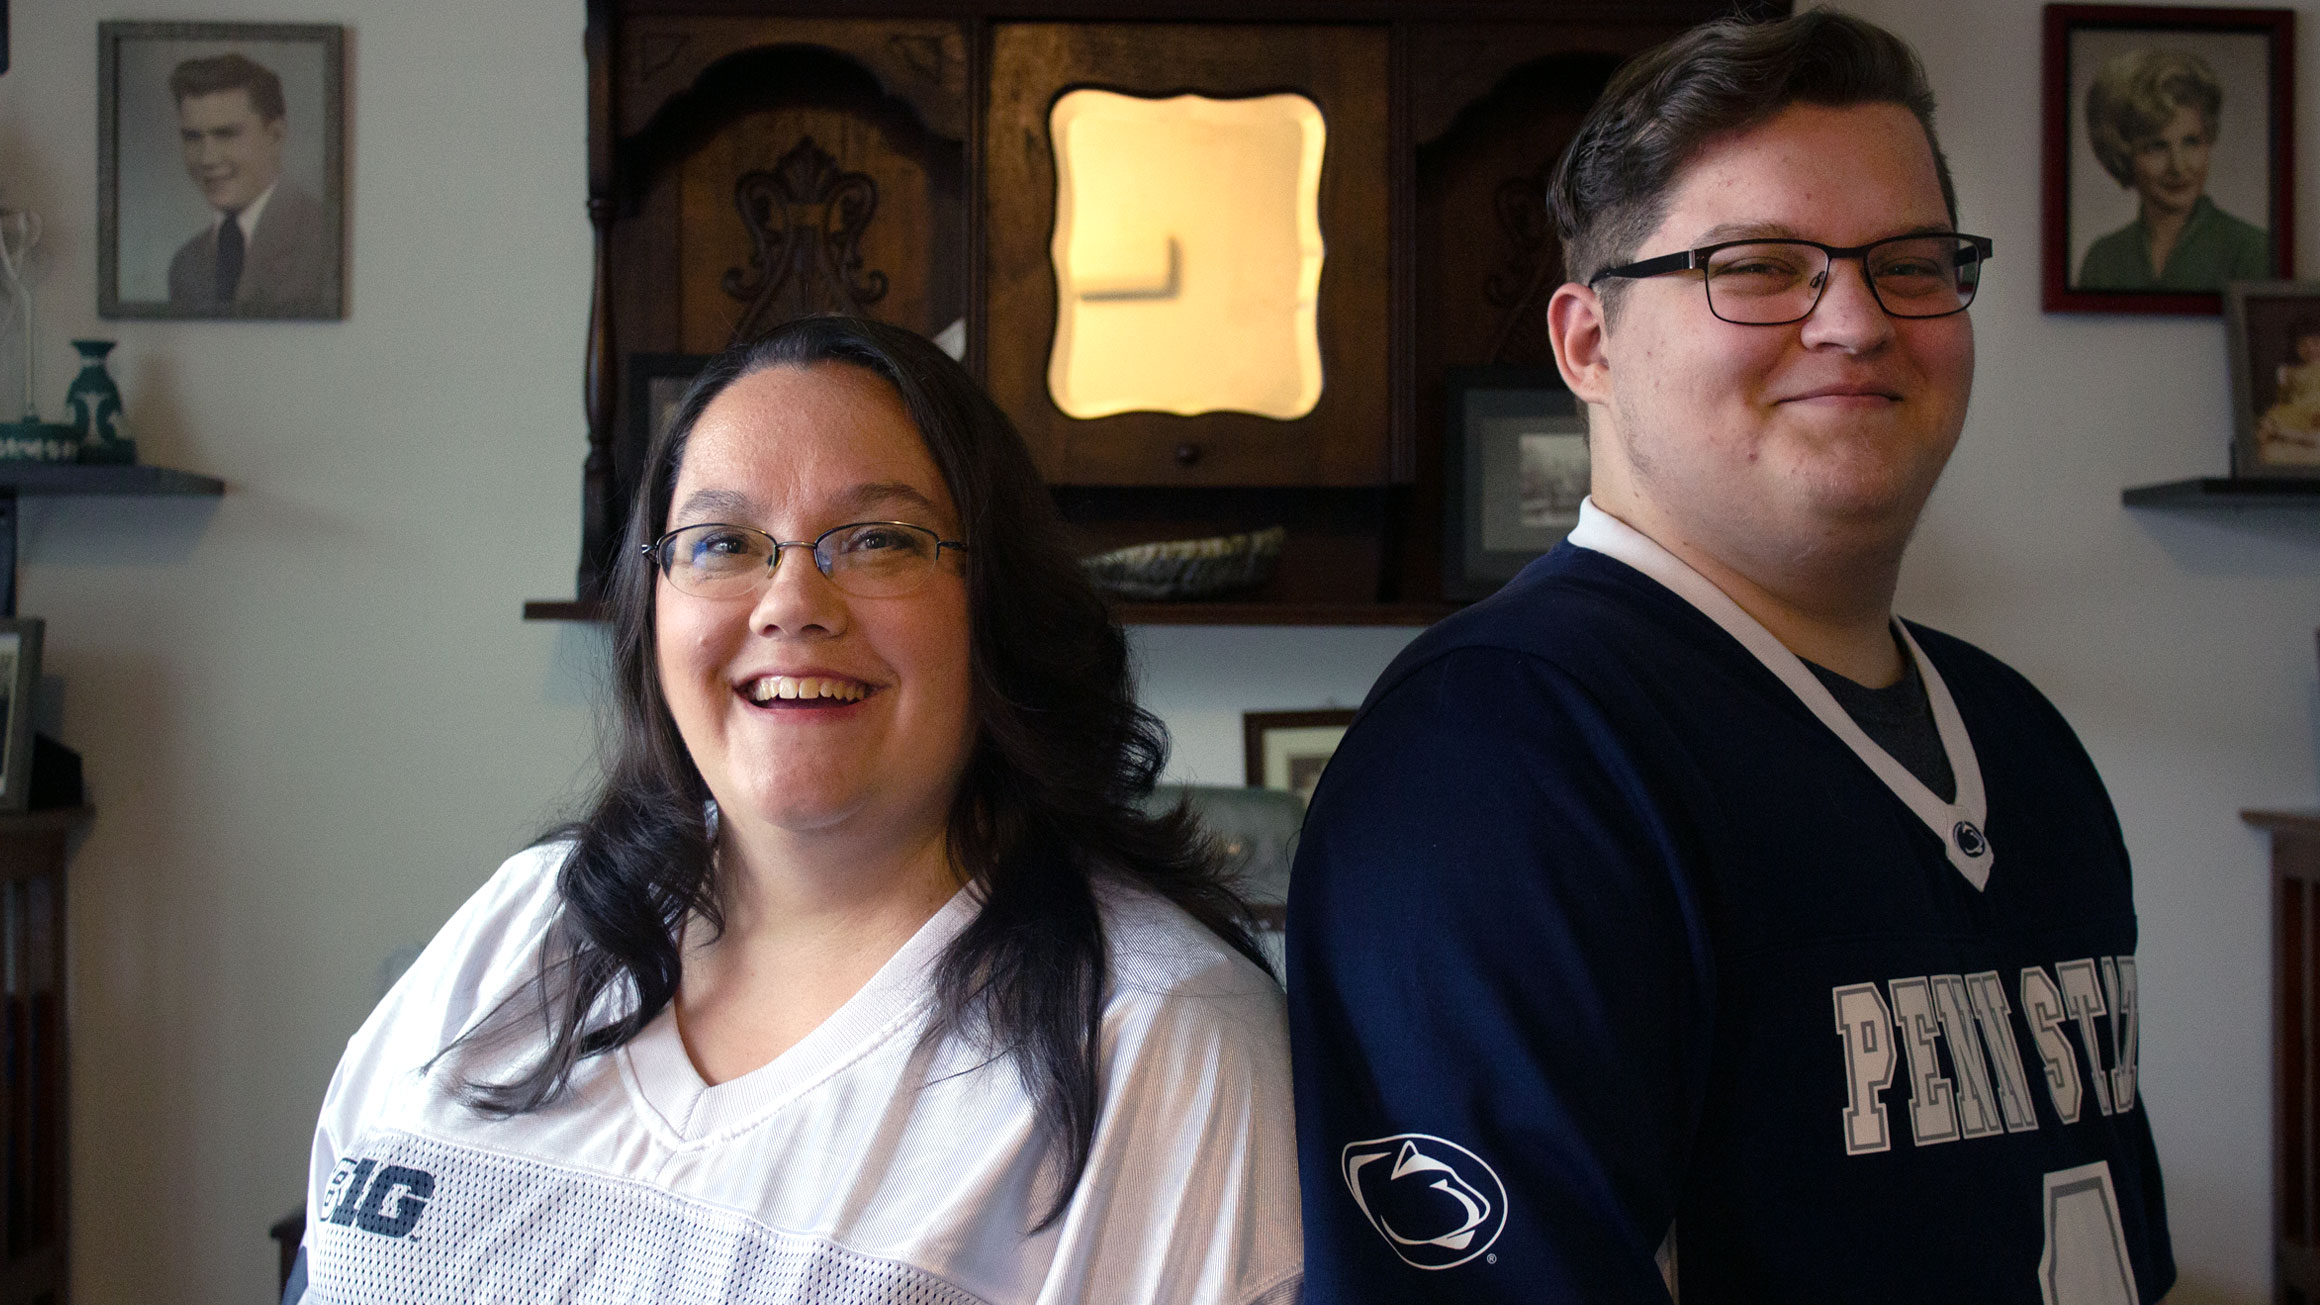 A portrait of Stephanie Files on the left and her son Josh Files on the right with both wearing Penn State football jerseys